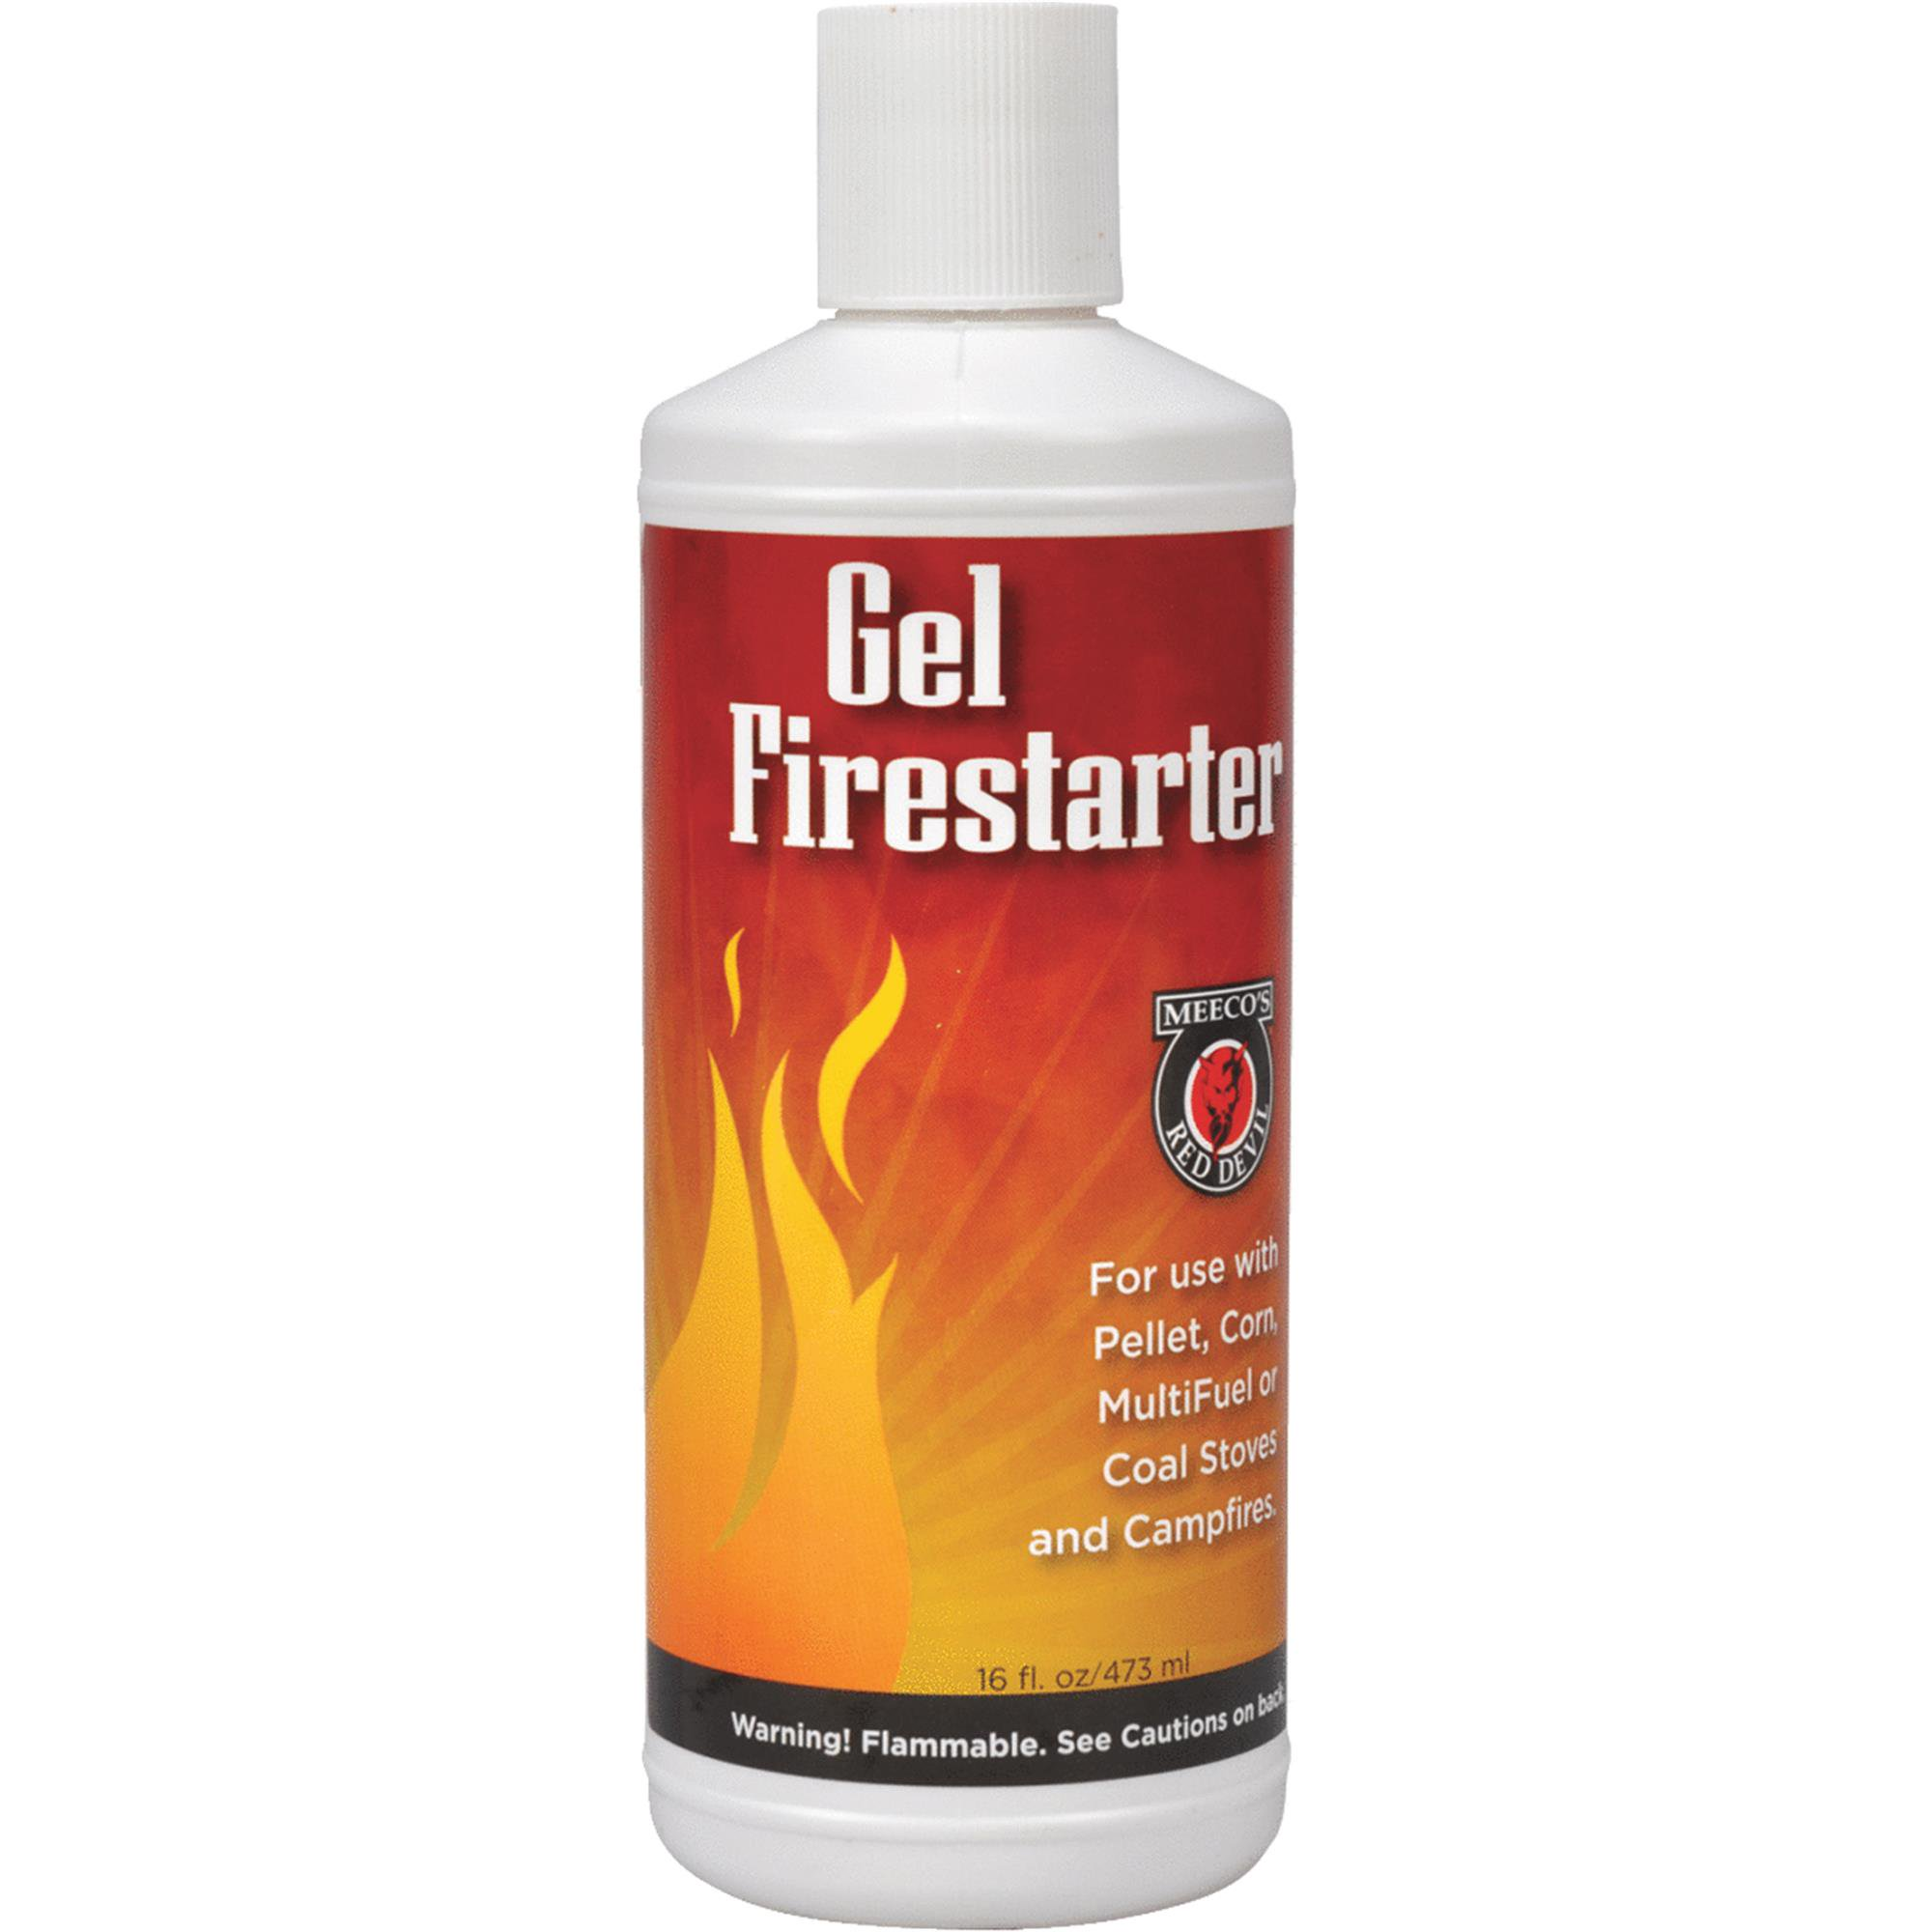 Meeco's Red Devil Fire Starter Gel by Meeco Mfg. Co. Inc.